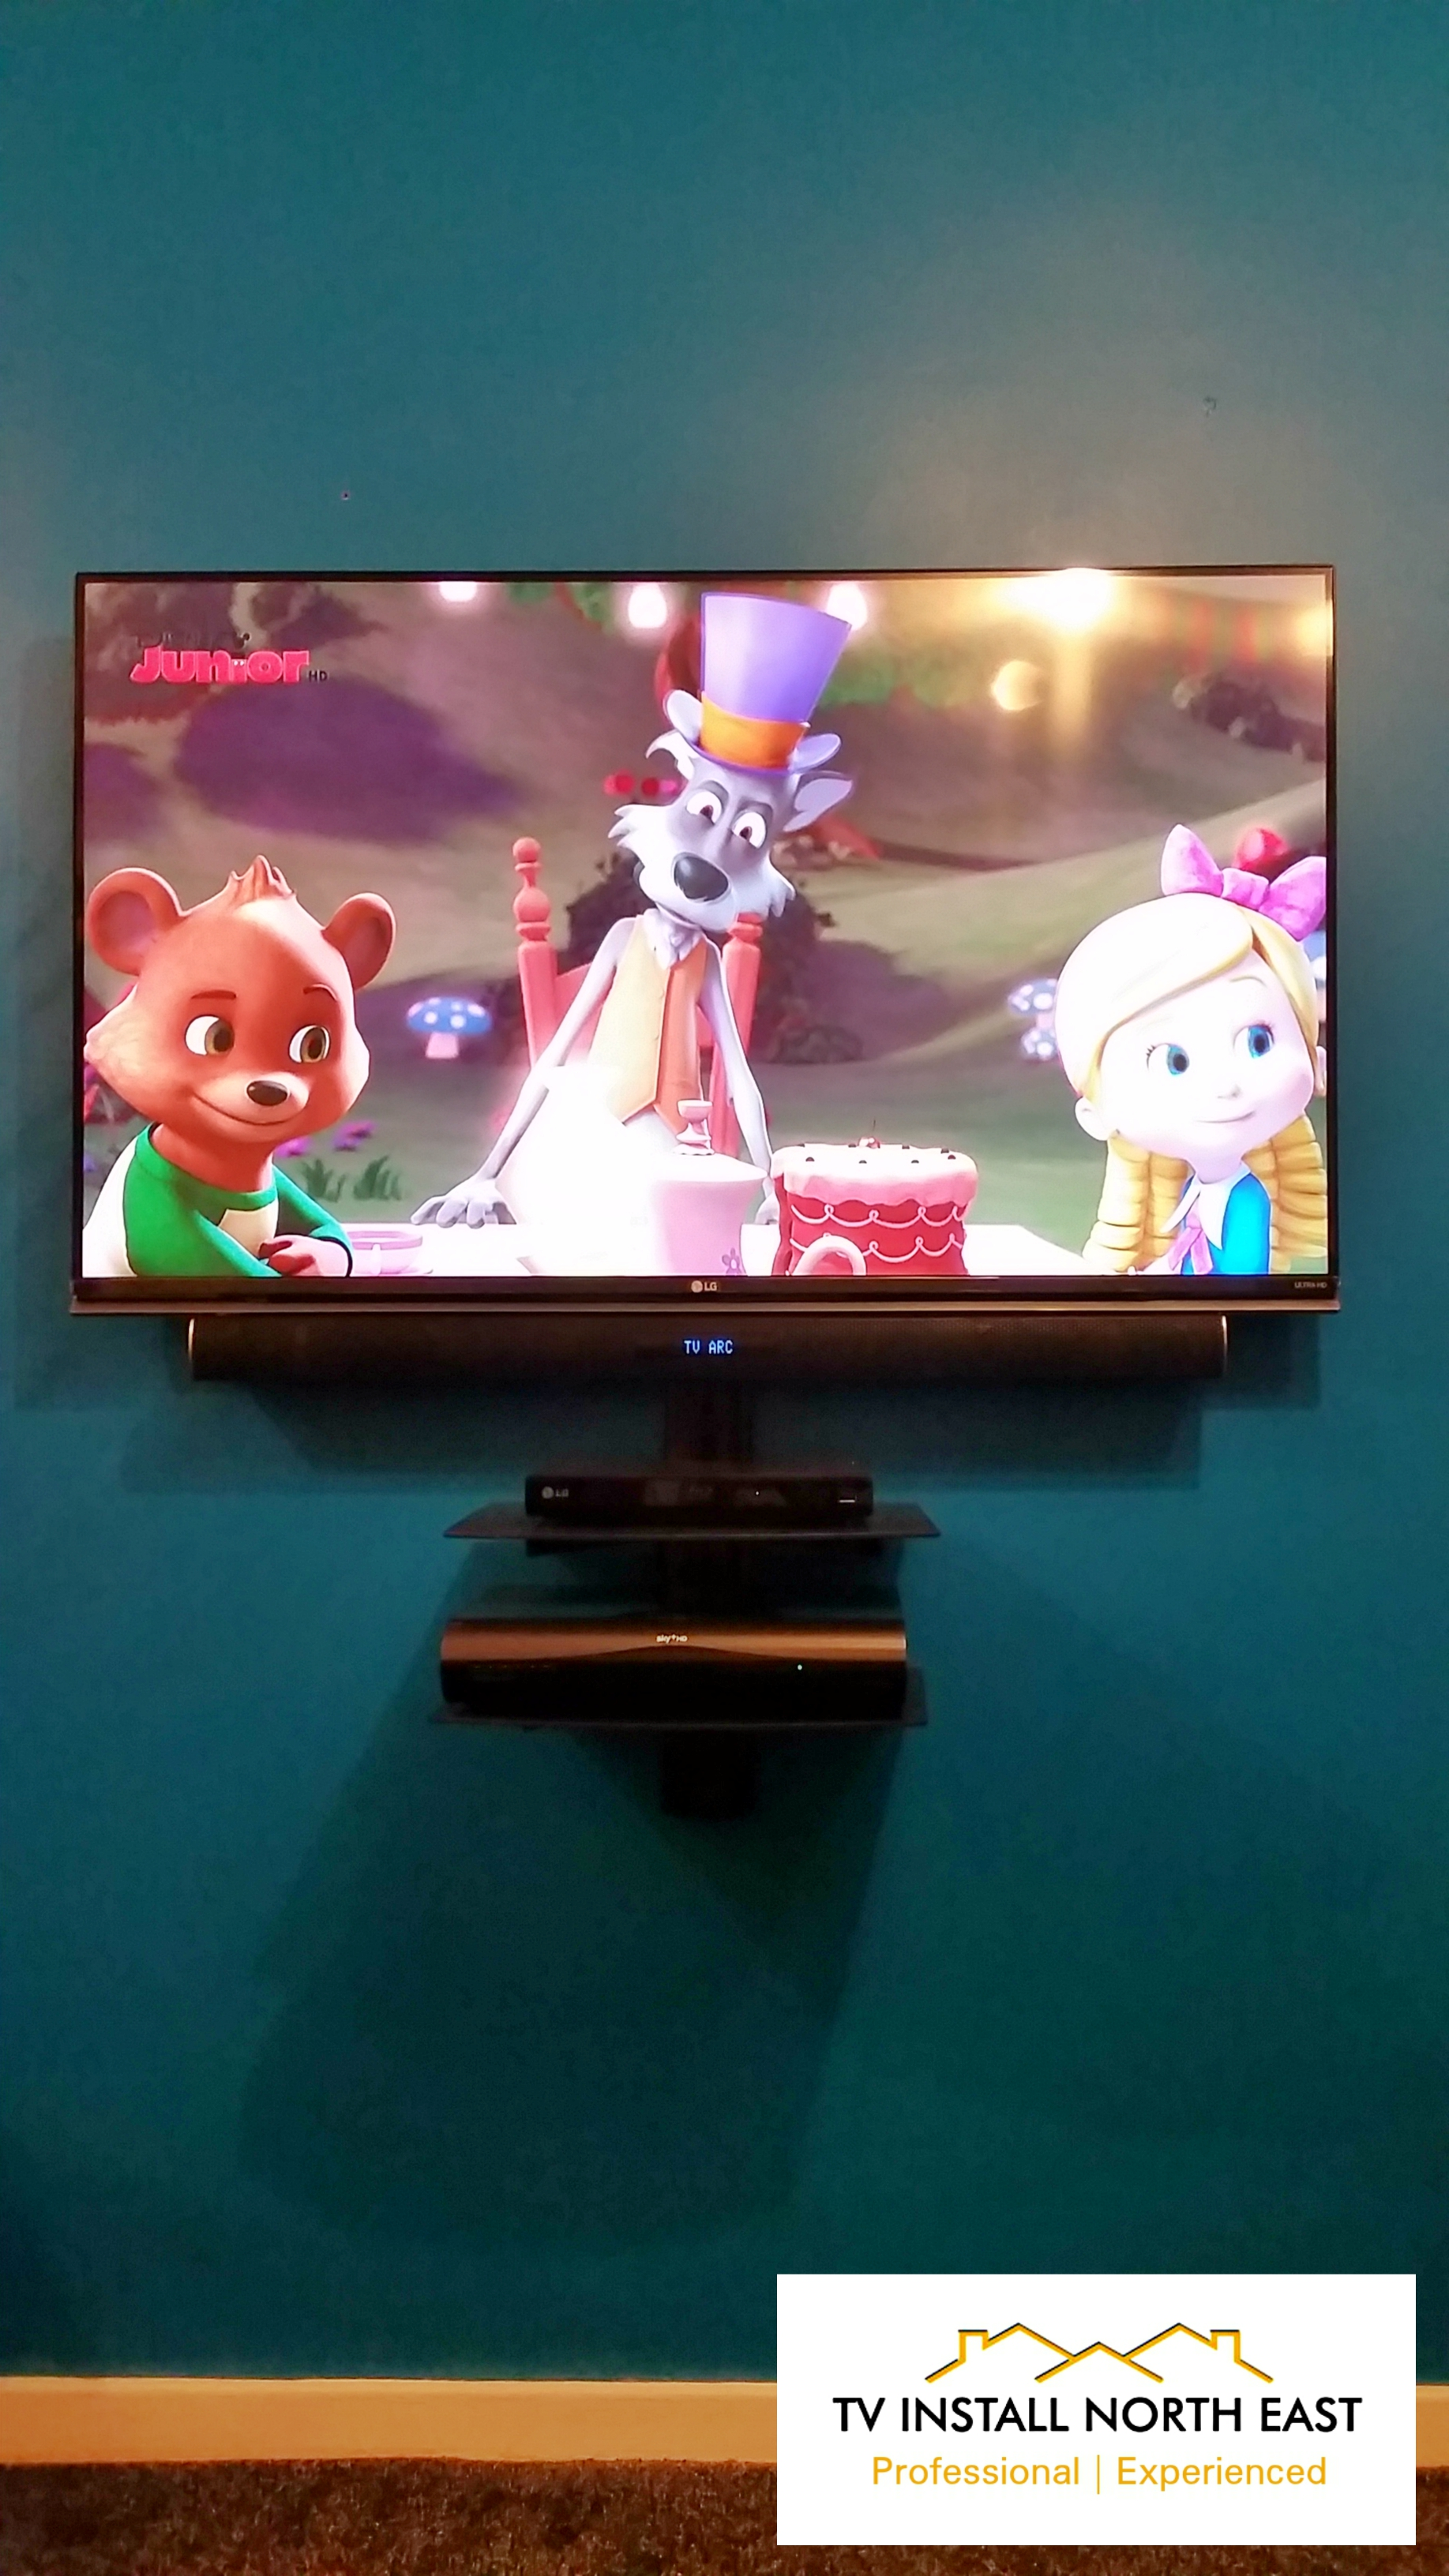 "LG 51"" LED TV with floating shelves"